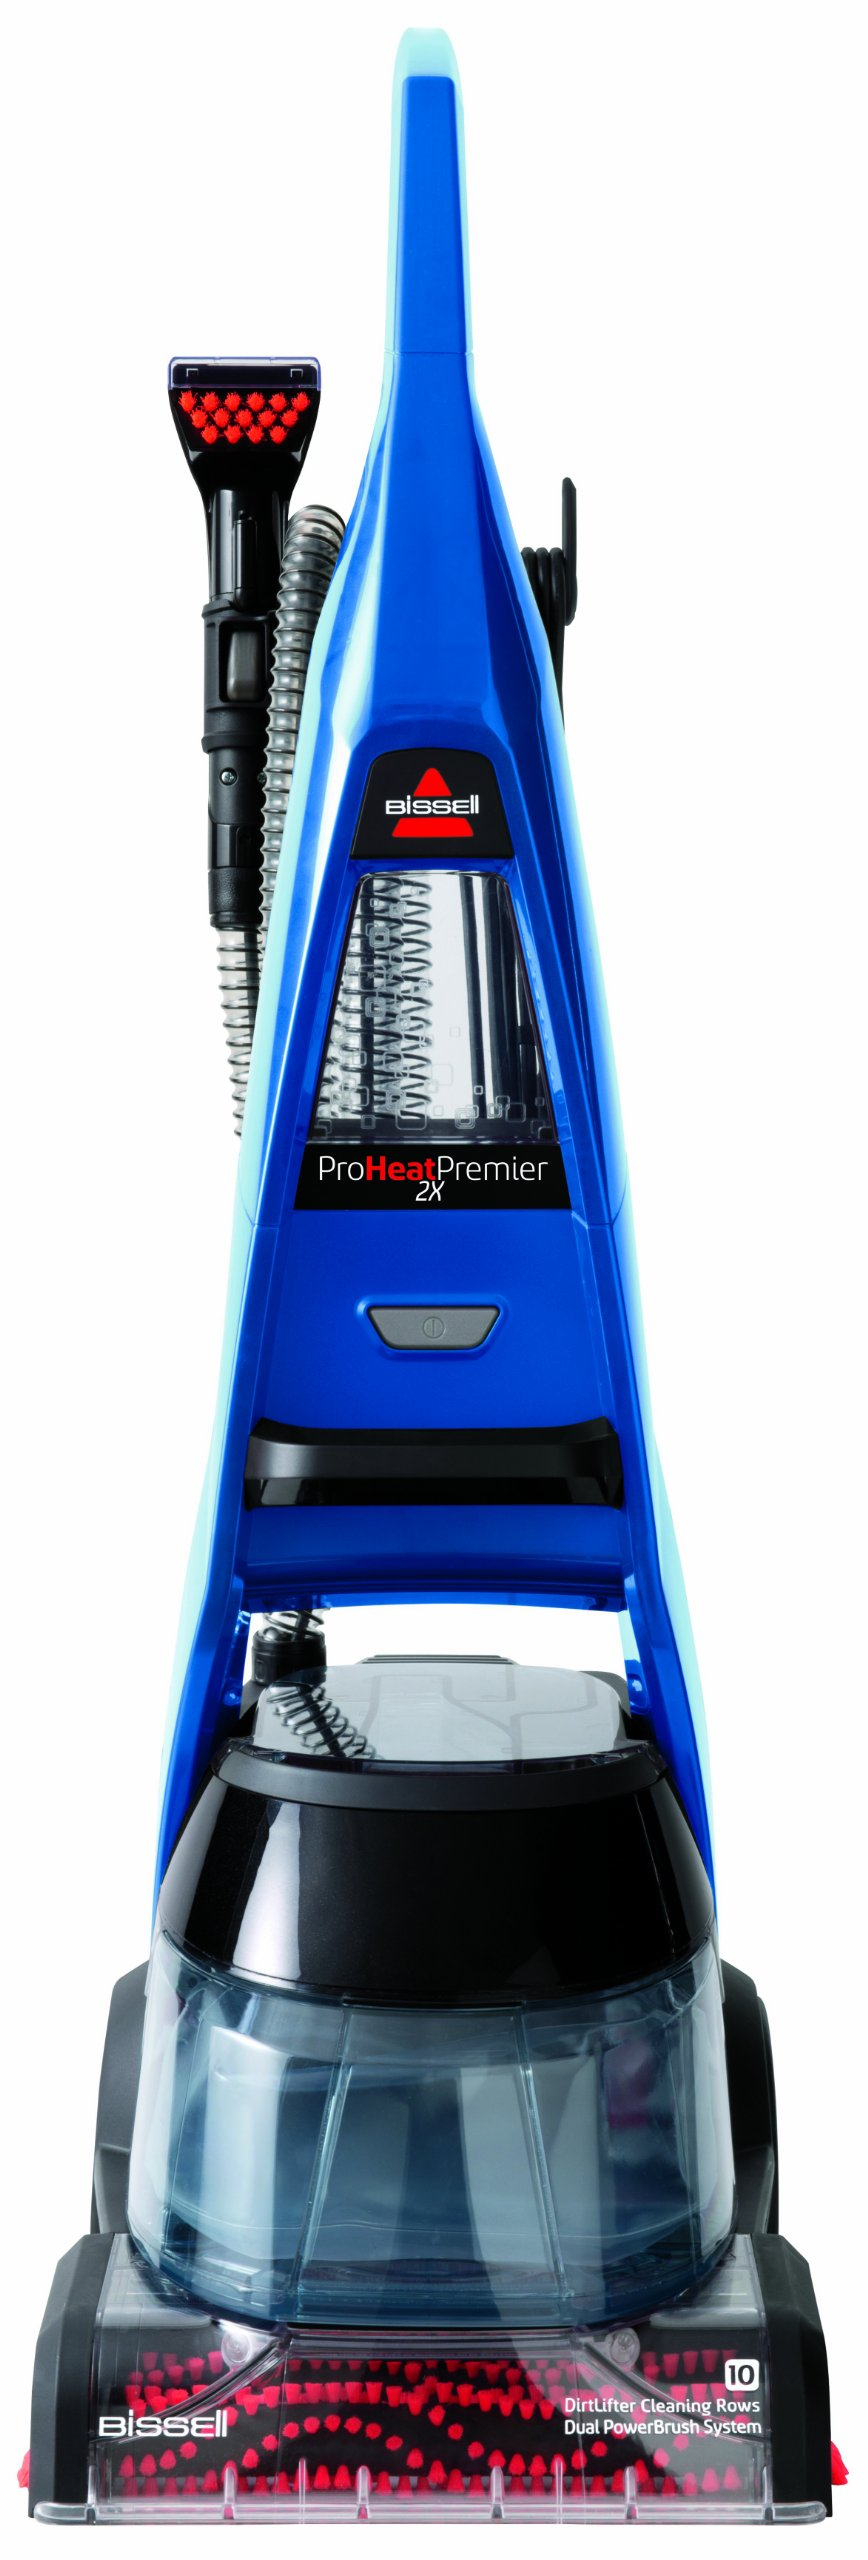 Bissell 47A23 Proheat 2x Premier Full-Size Carpet Cleaner, Blue by Bissell